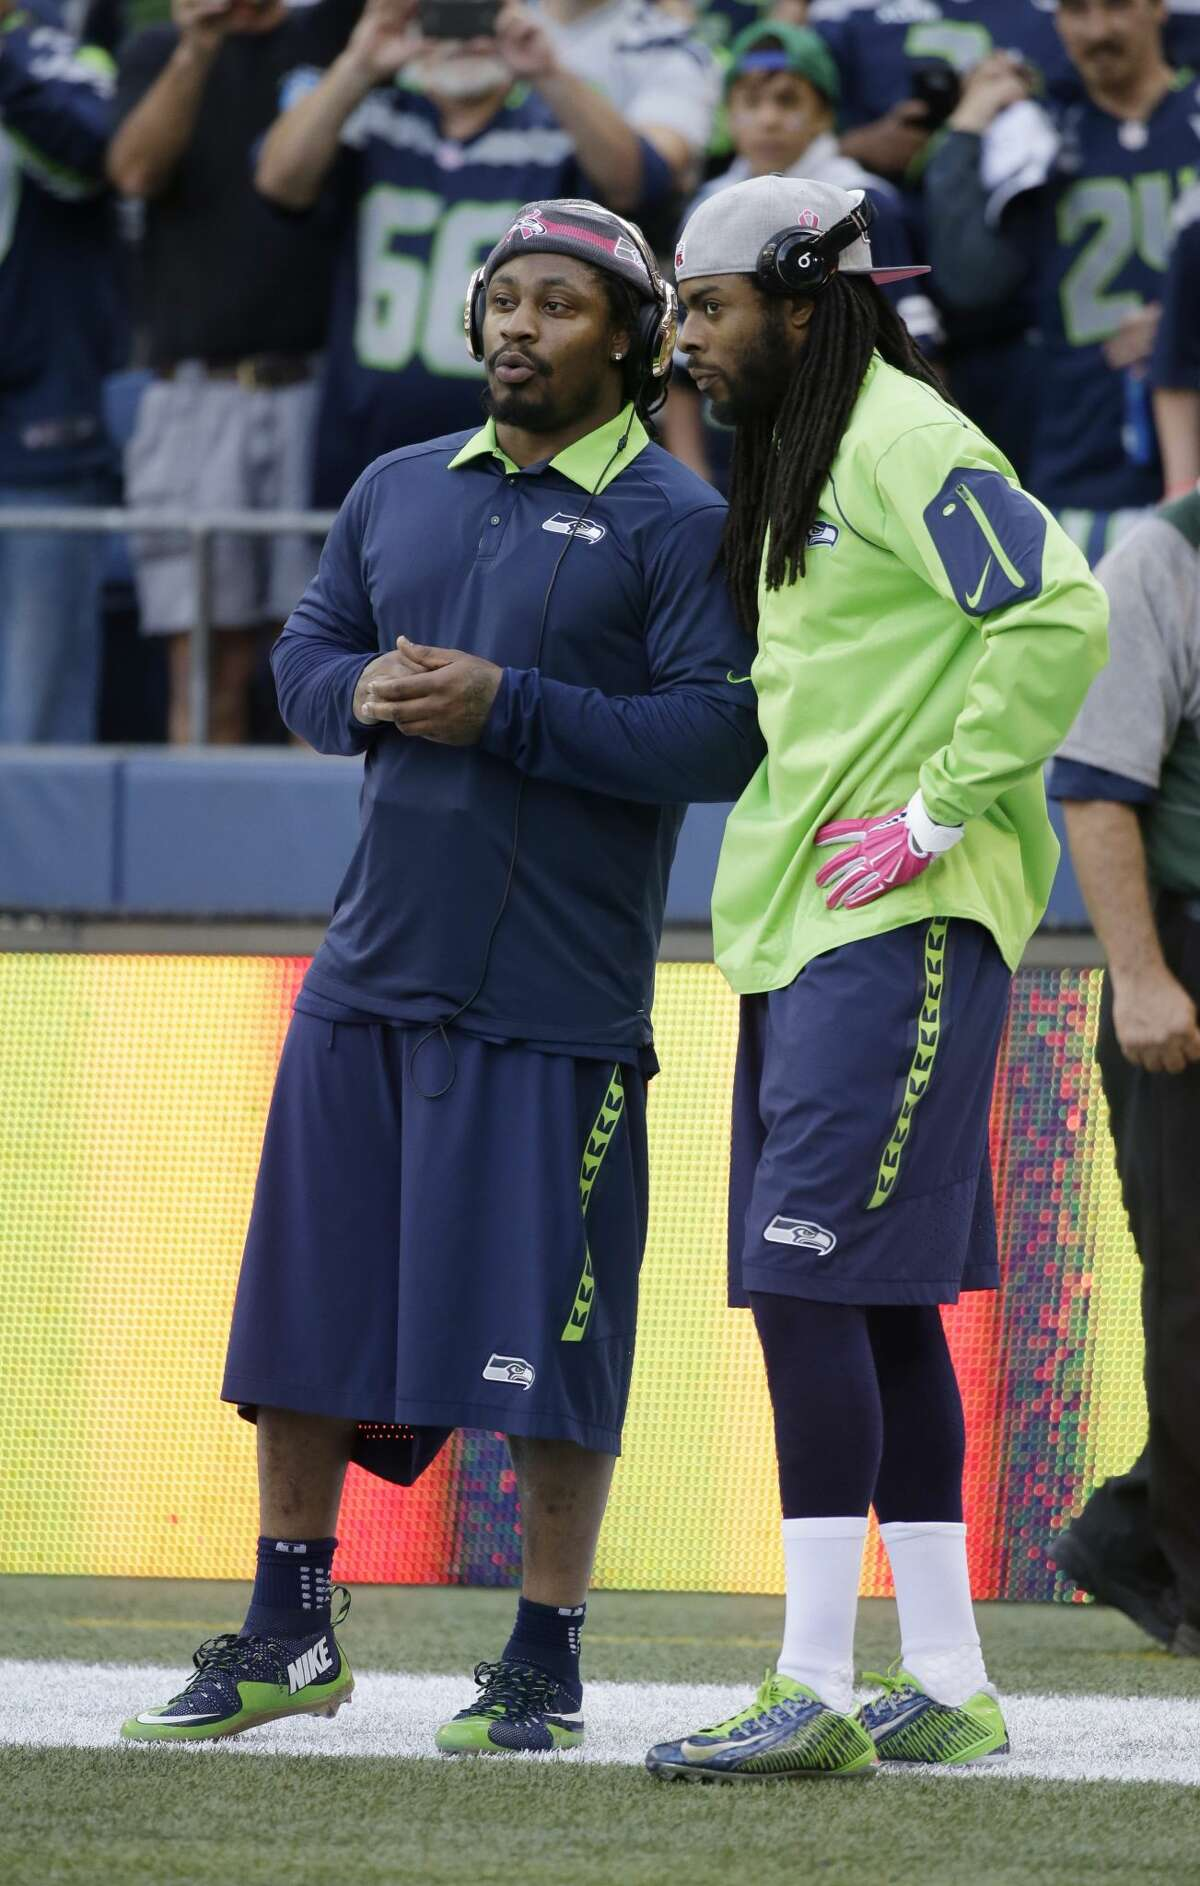 Seattle Seahawks running back Marshawn Lynch, right, greets teammate Richard Sherman, left, during warmups before an NFL football game against the Detroit Lions, Monday, Oct. 5, 2015, in Seattle as they wear pink hats and gloves for breast cancer awareness. (AP Photo/Elaine Thompson)